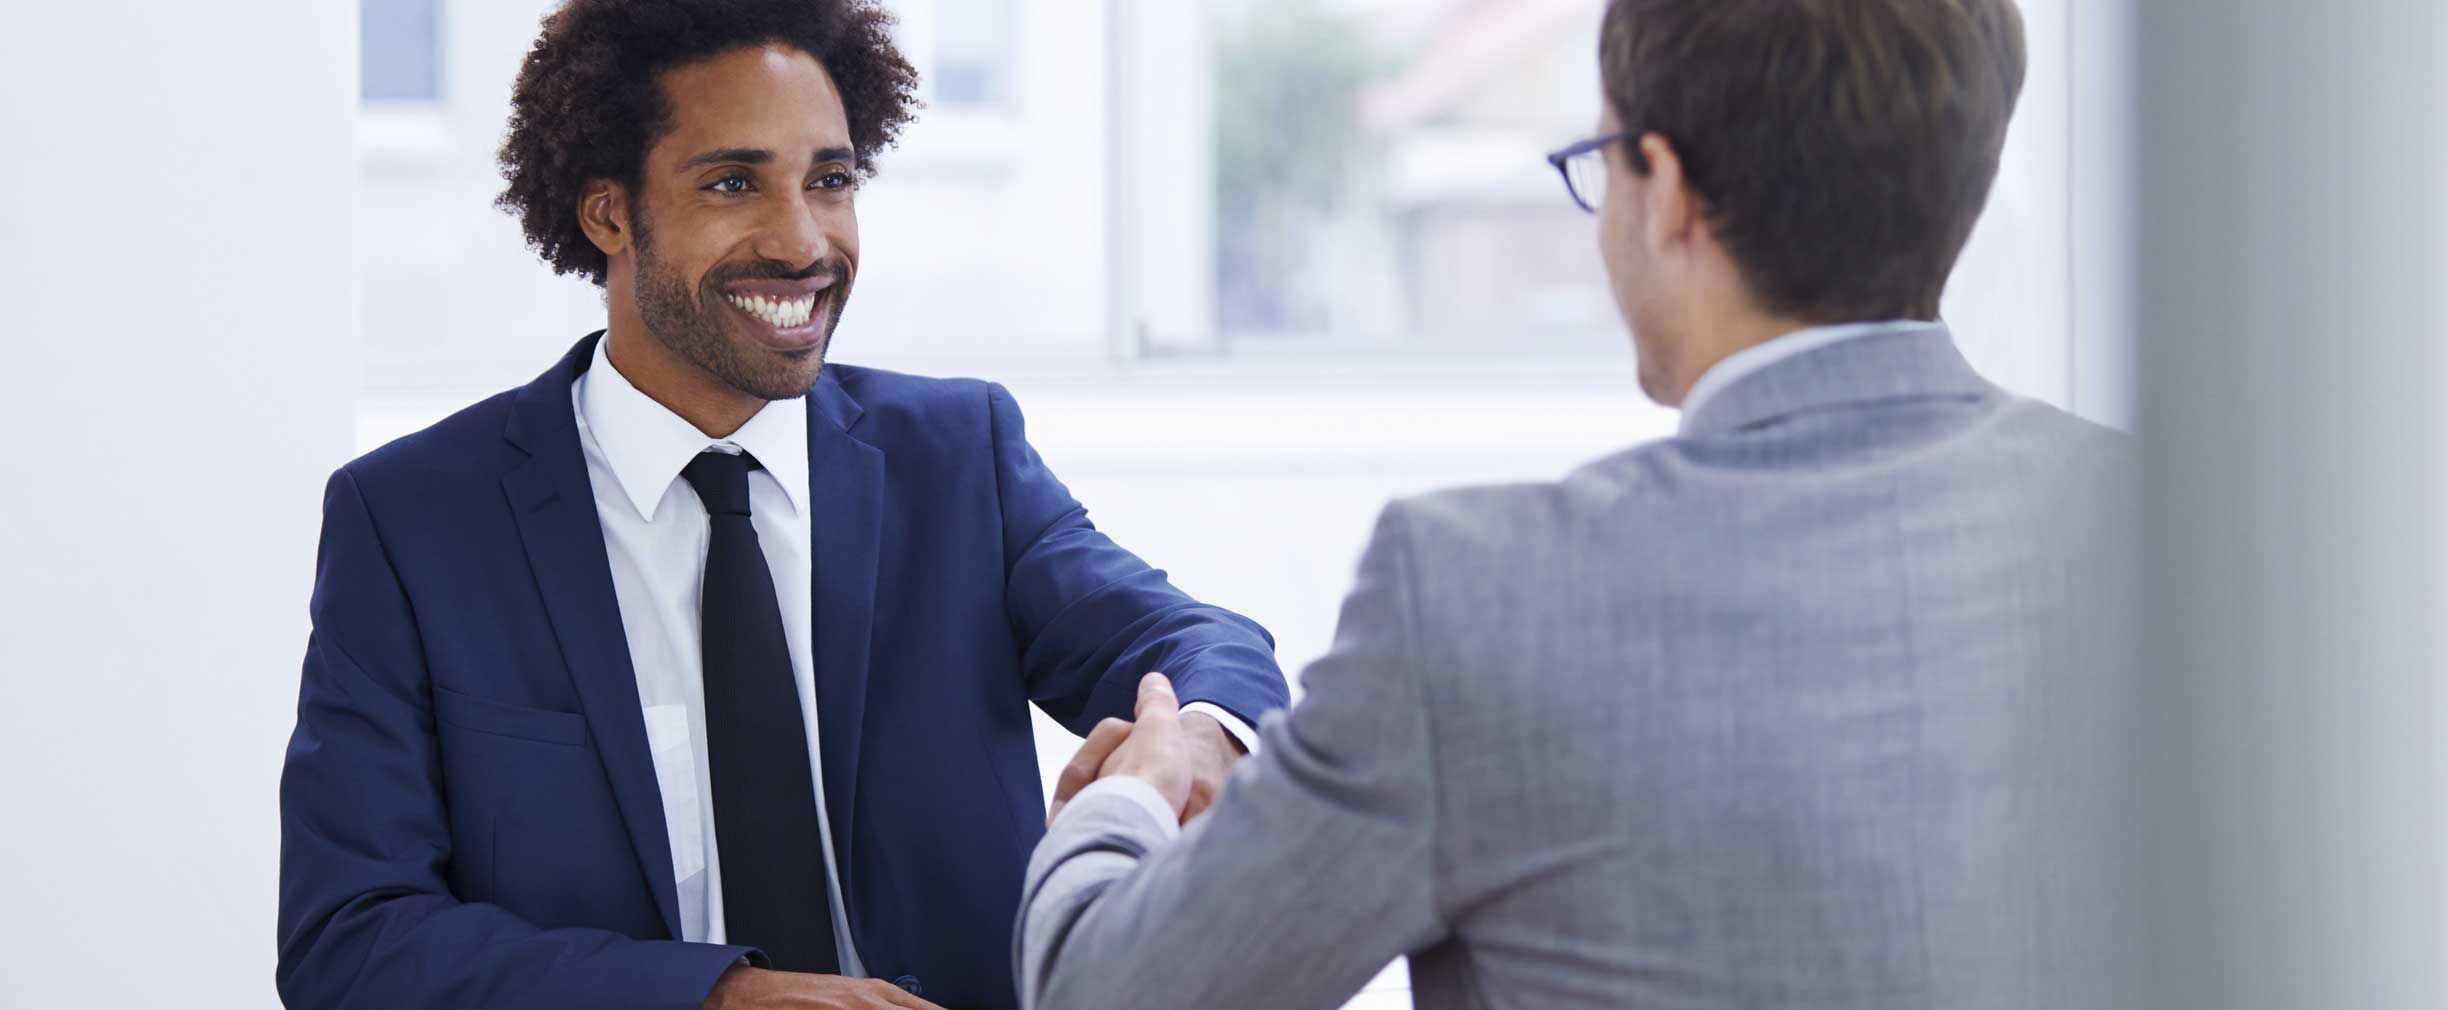 five tips for nailing the interview regions five tips for nailing the interview